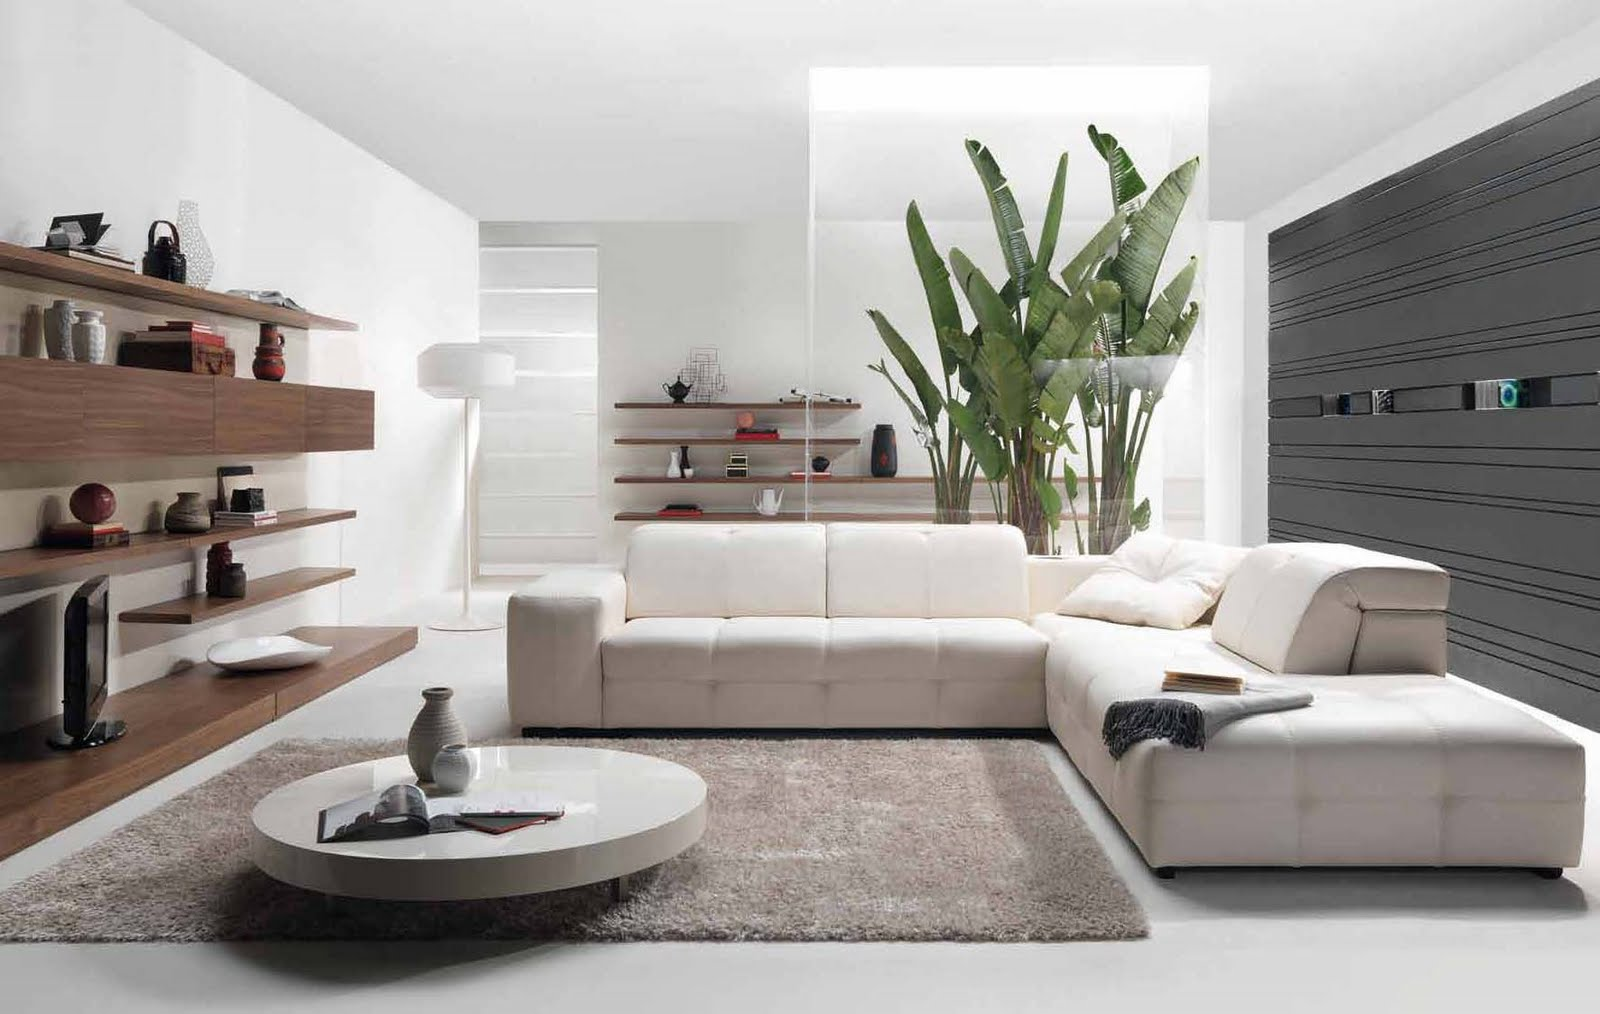 Modern home interior furniture designs diy ideas living room ideas - Living room decor modern ...